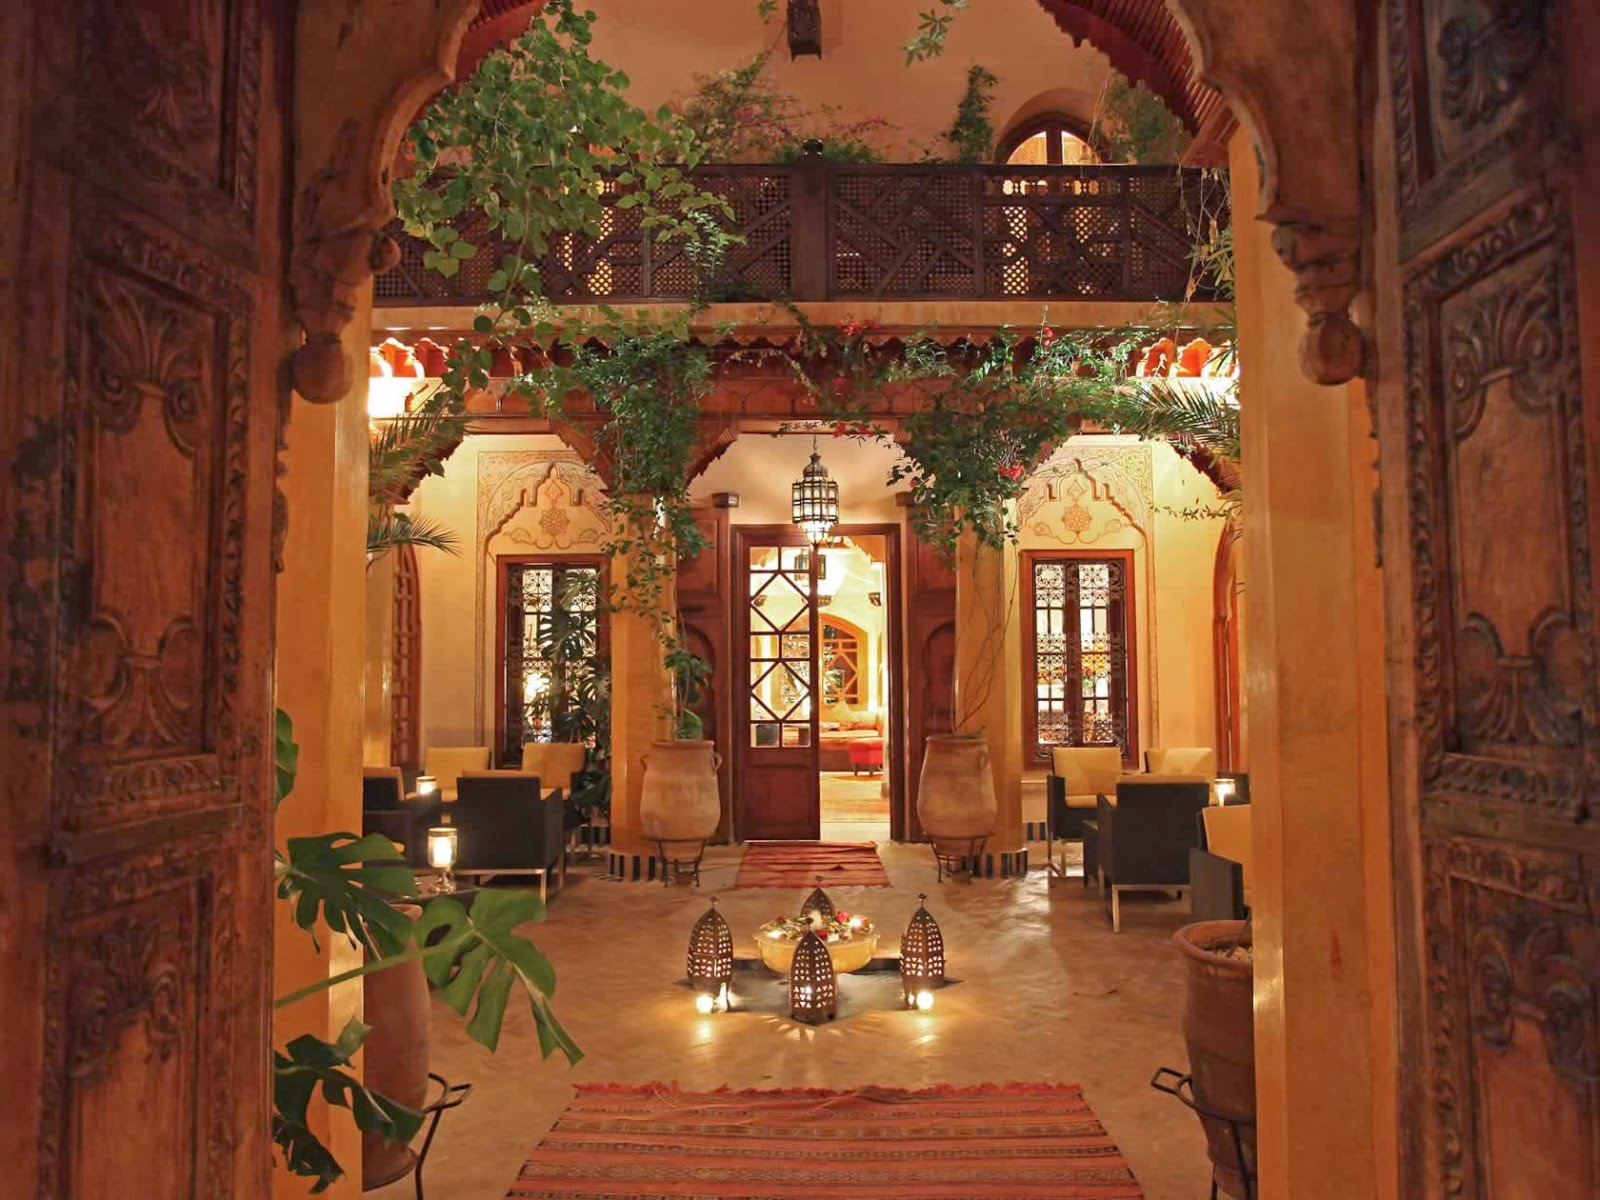 Luxury life design la maison arabe marrakech morocco for Architecture maison arabe